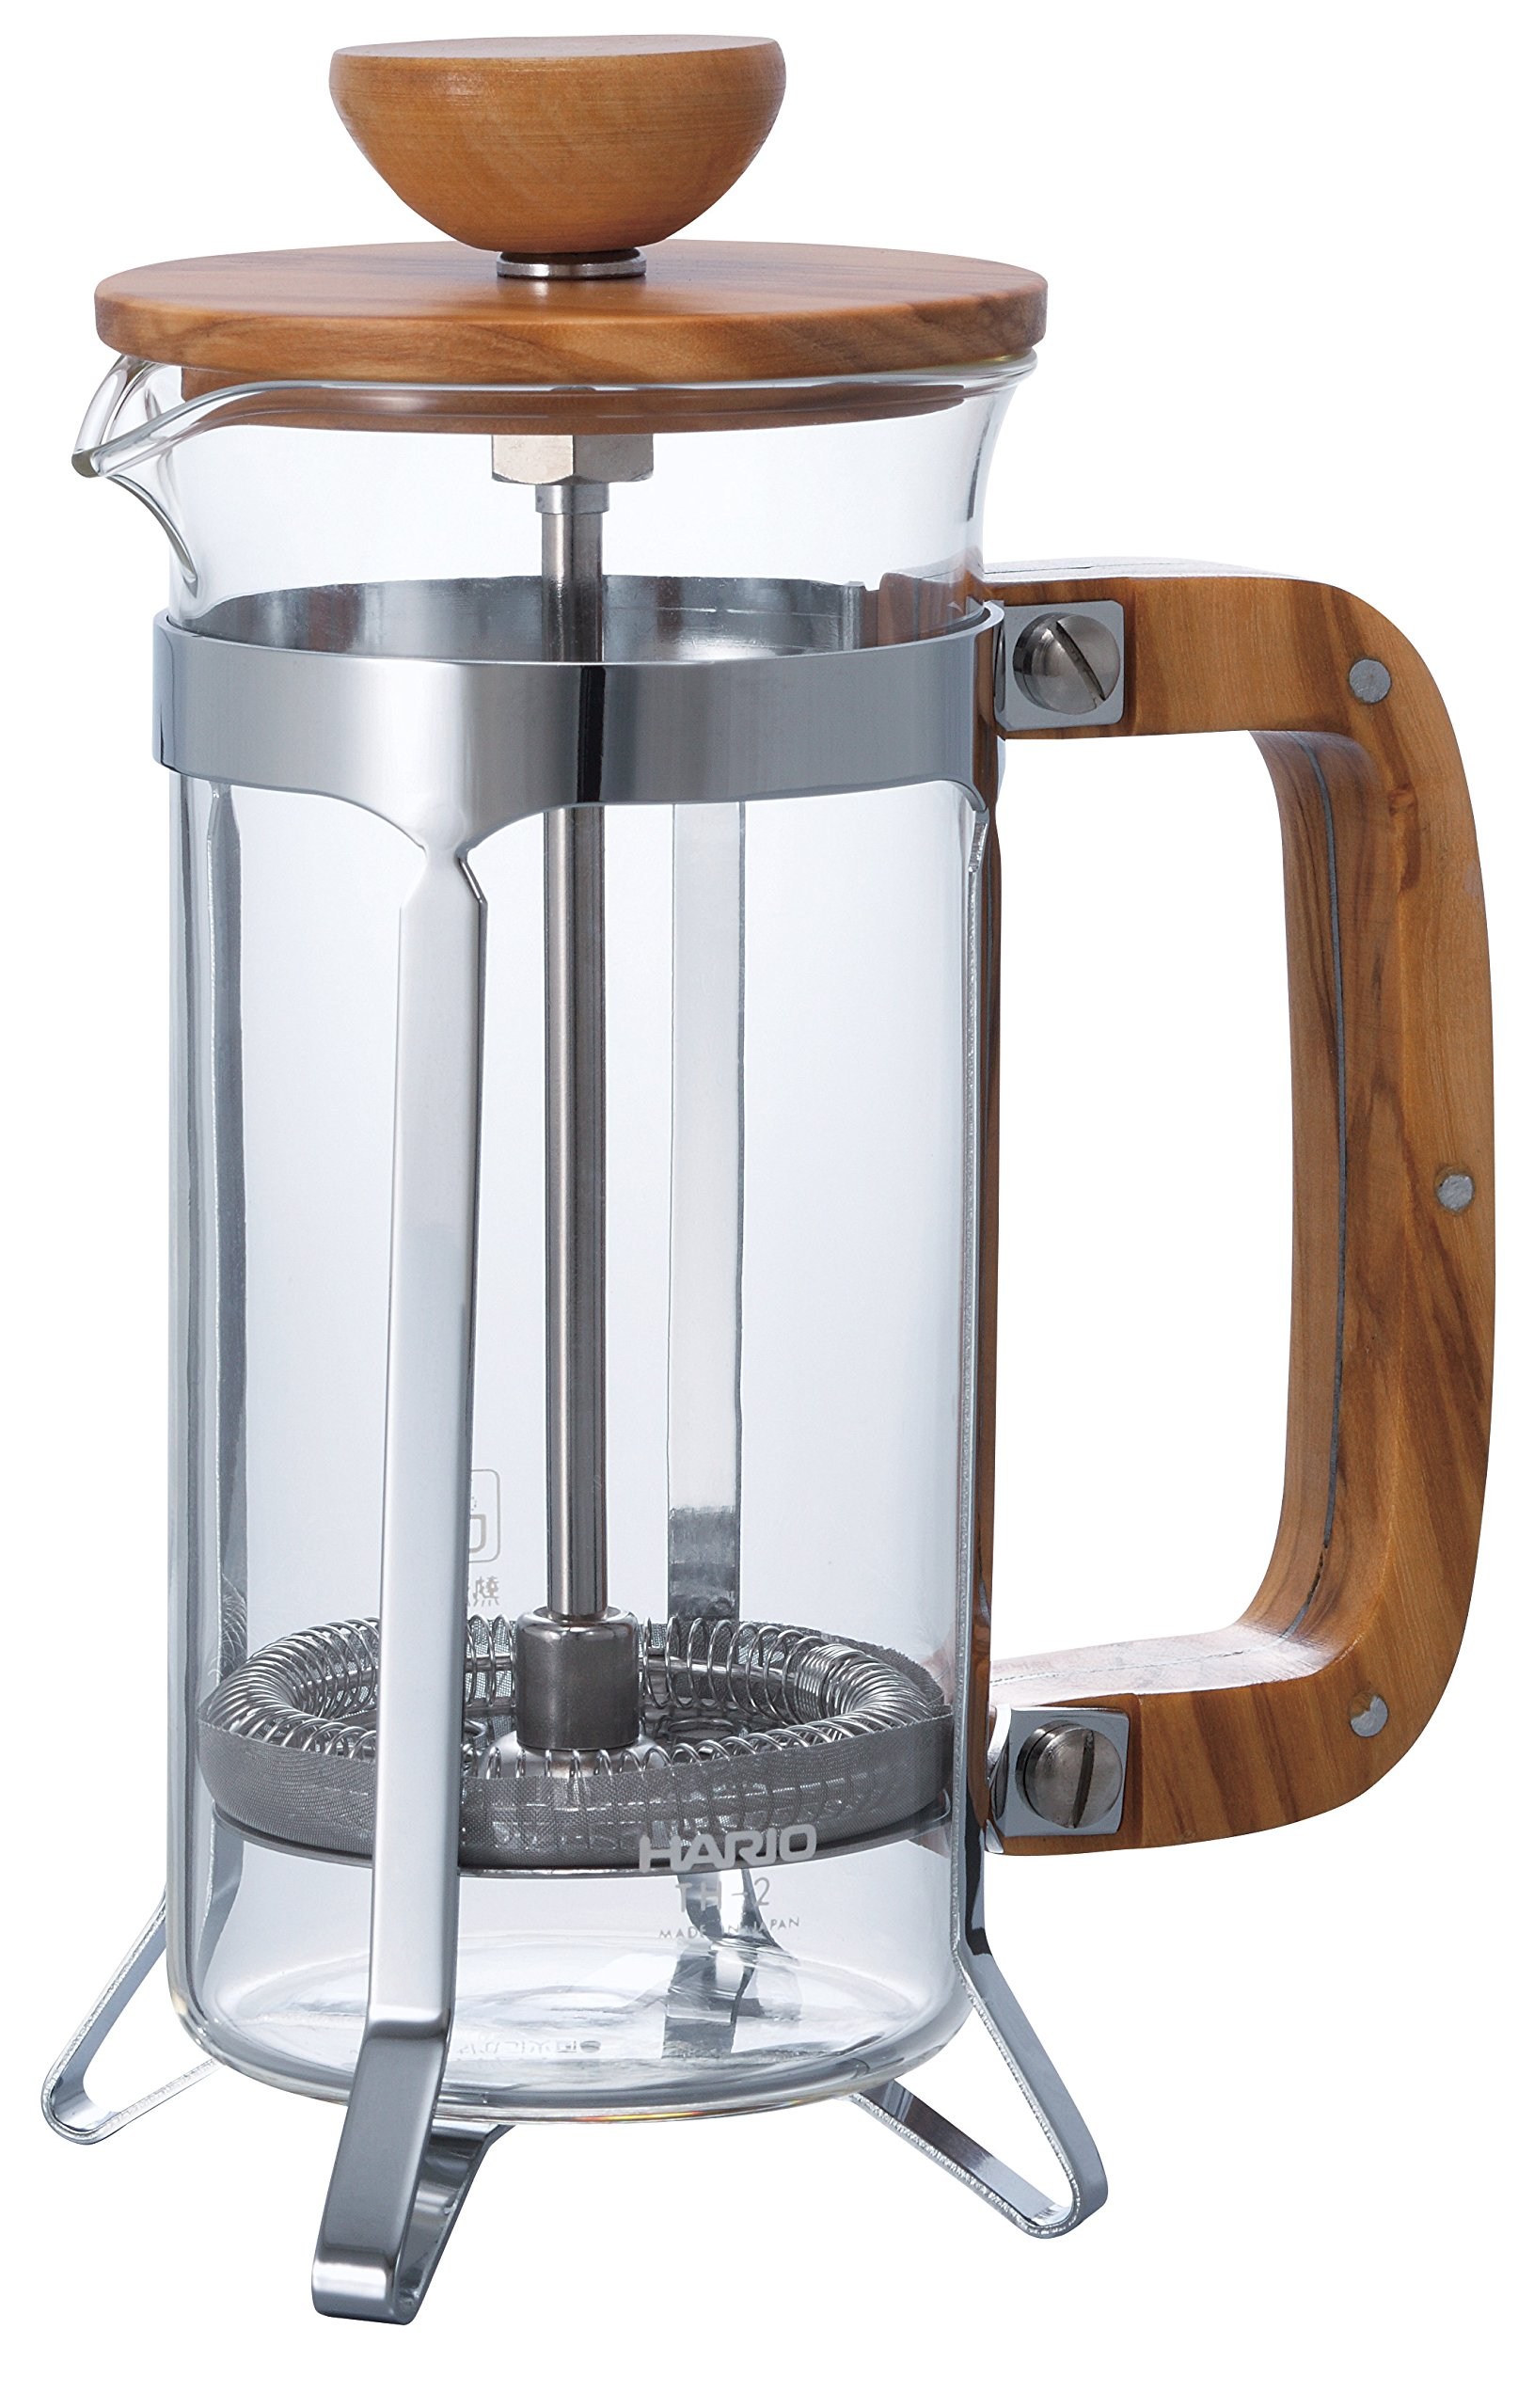 Hario CPSW-2-OV Olivewood Cafépress Coffee and Tea Press, 300ml